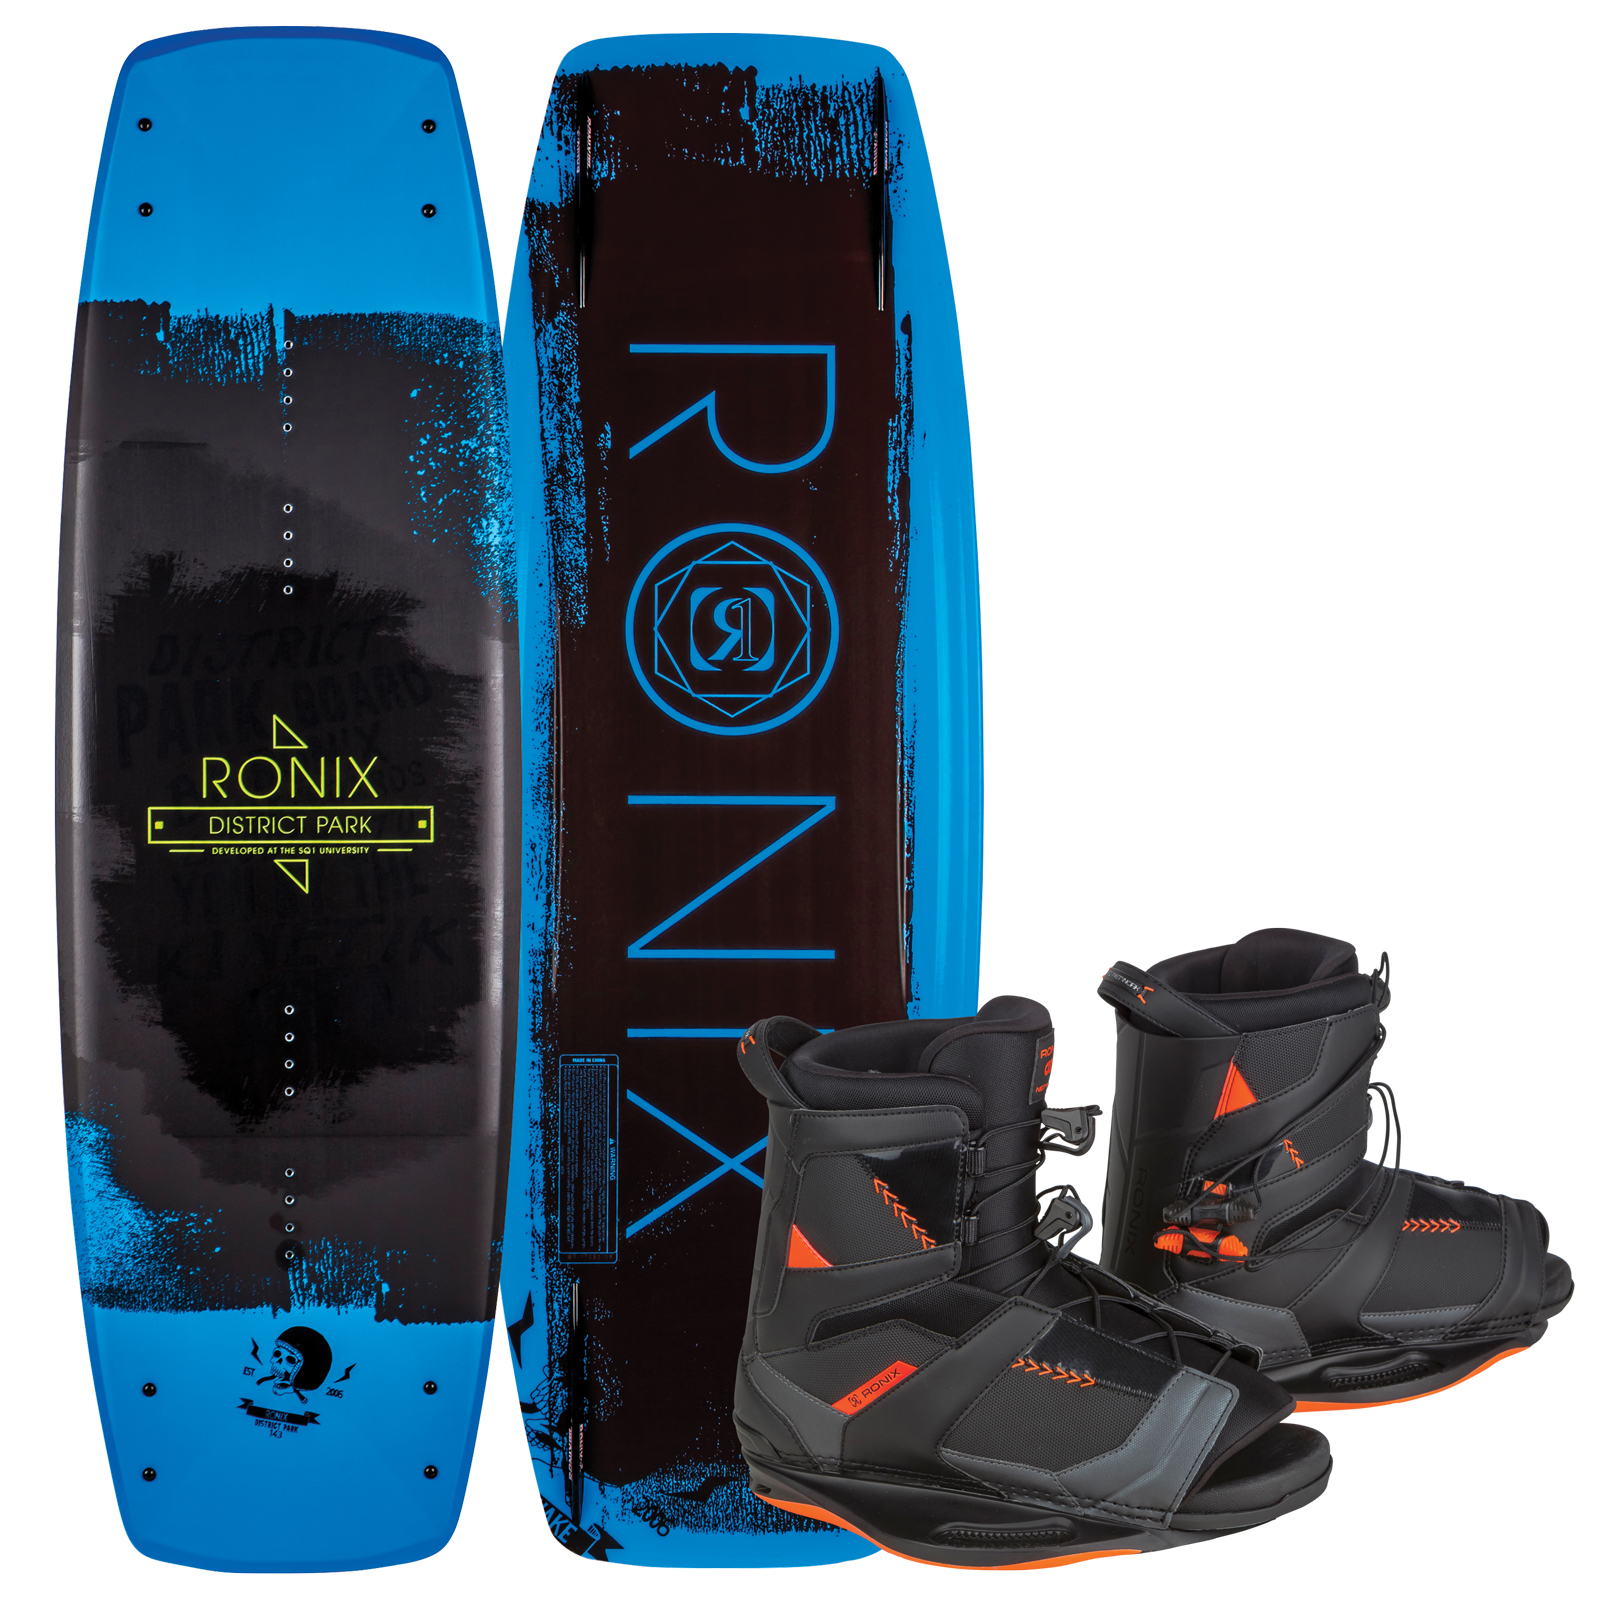 DISTRICT PARK 134 W/ NETWORK PACKAGE RONIX 2017